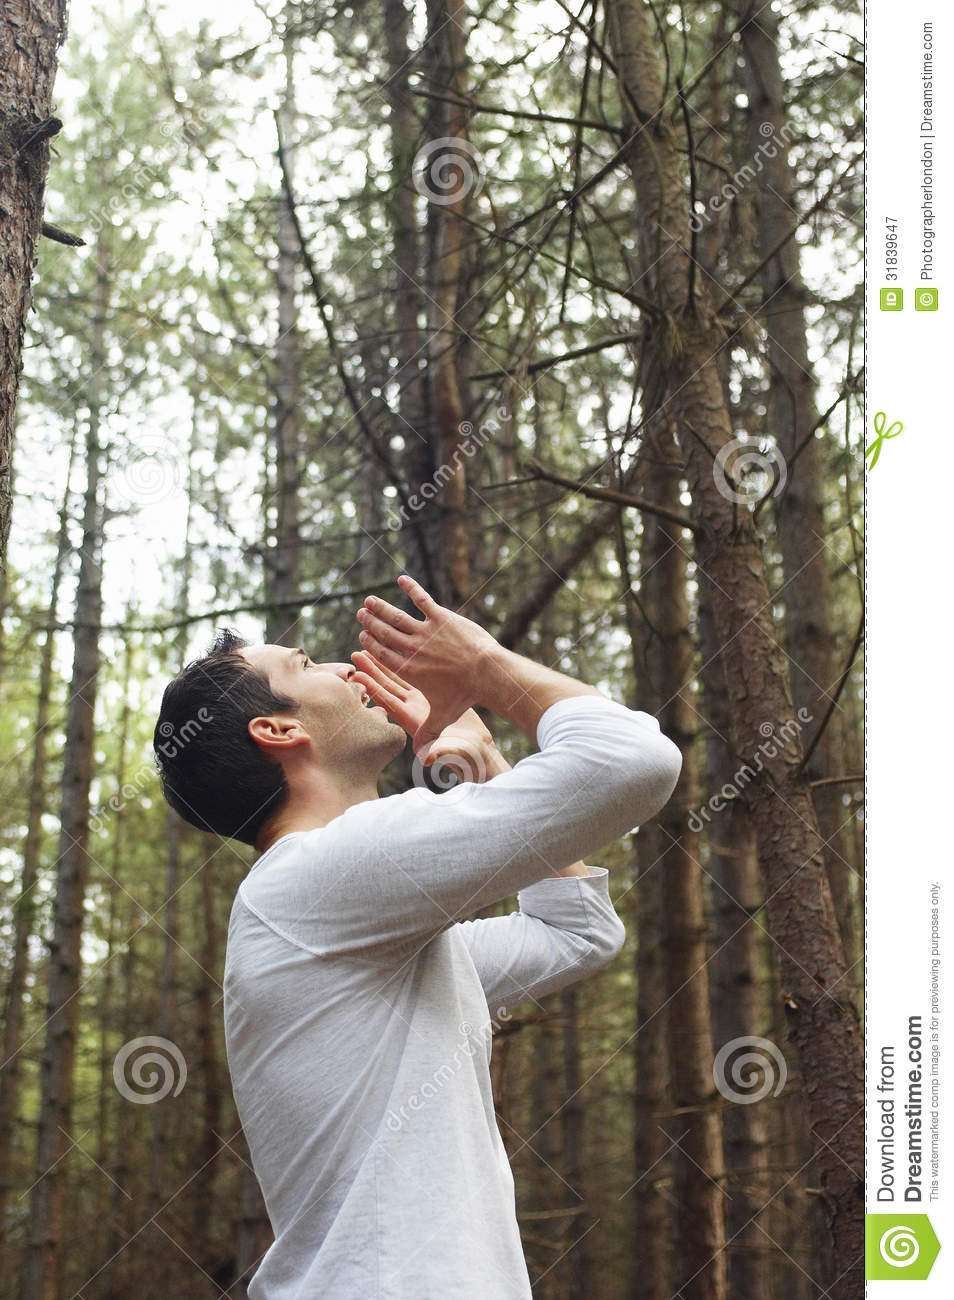 Man Yelling All Alone In Woods